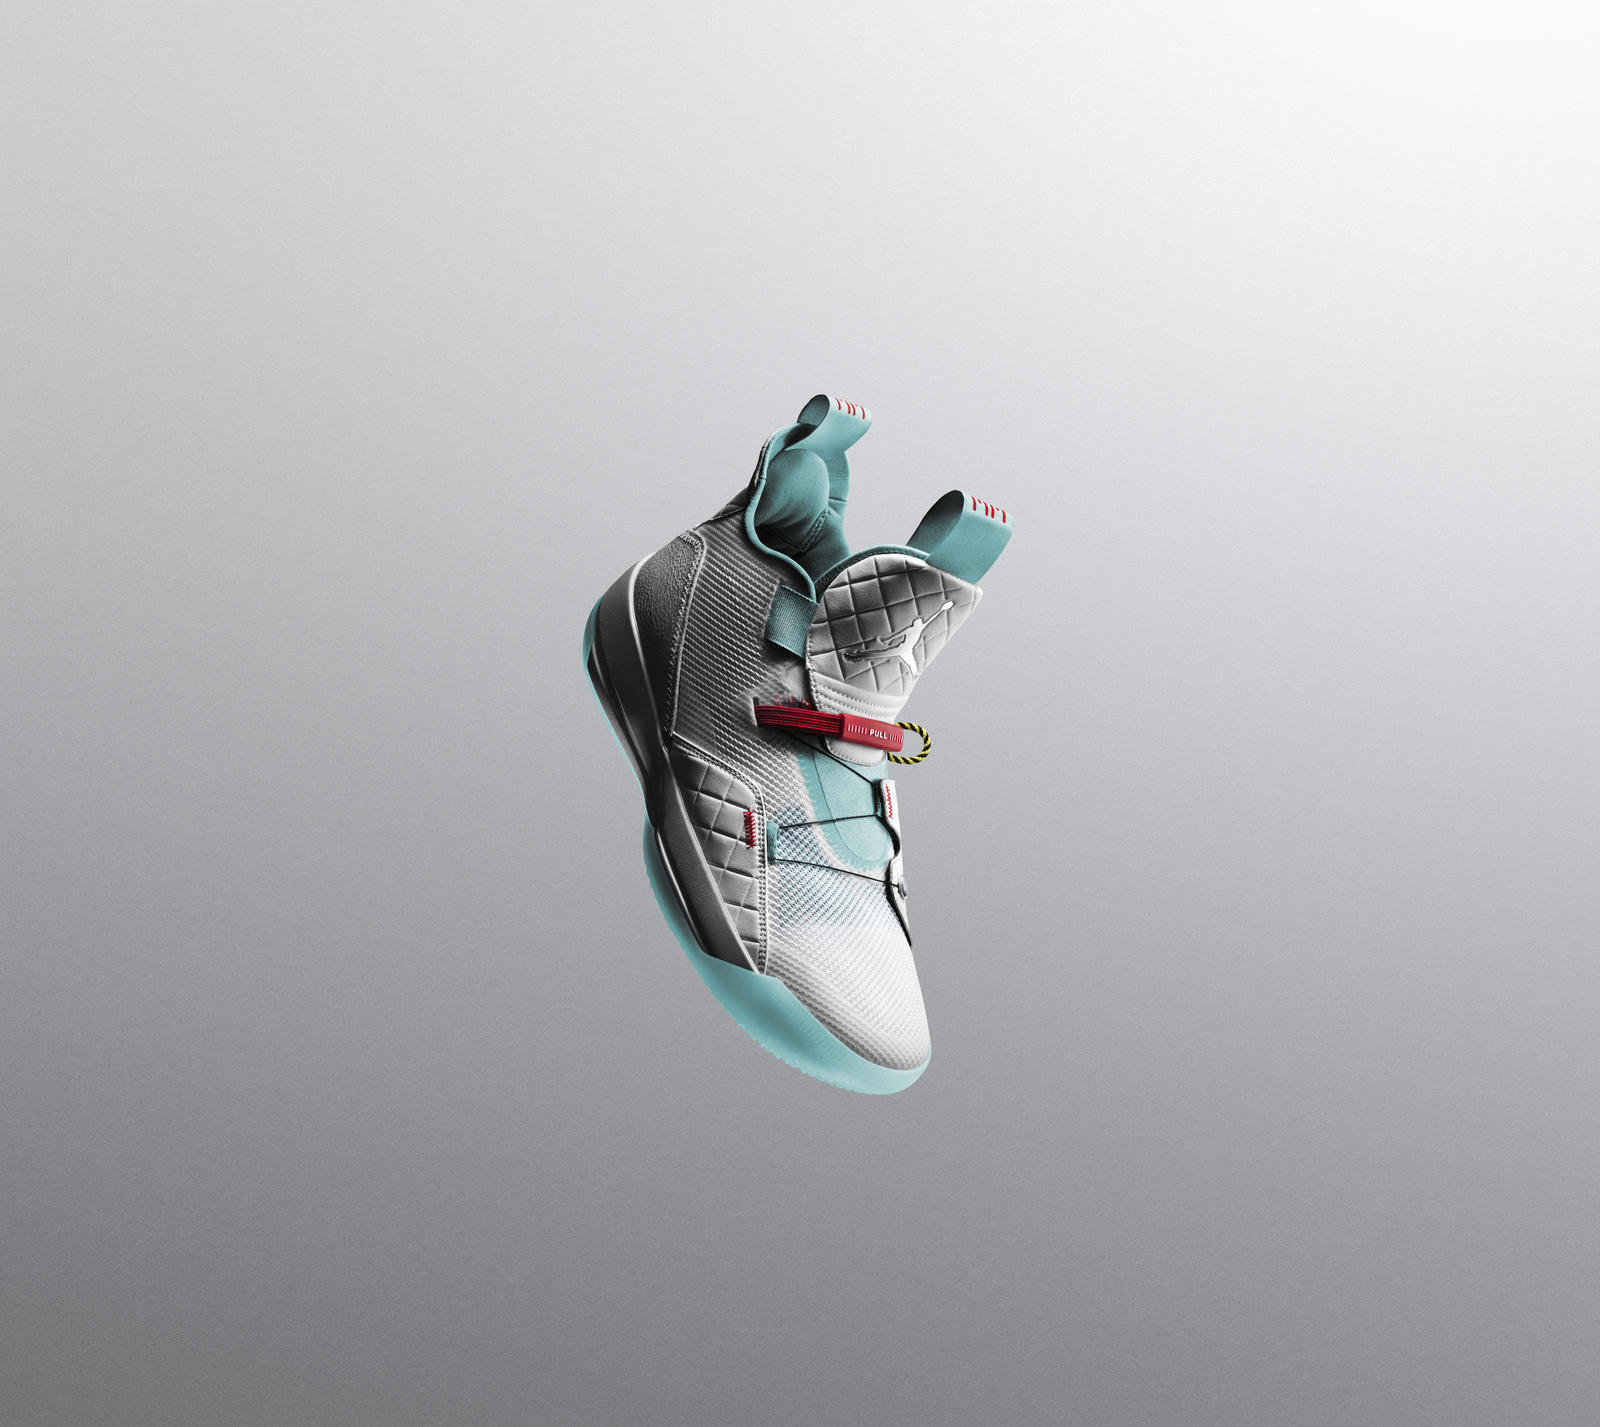 meilleure sélection 5978d 7d7bb These Colorways Of The Air Jordan 33 Are From The Jordan ...